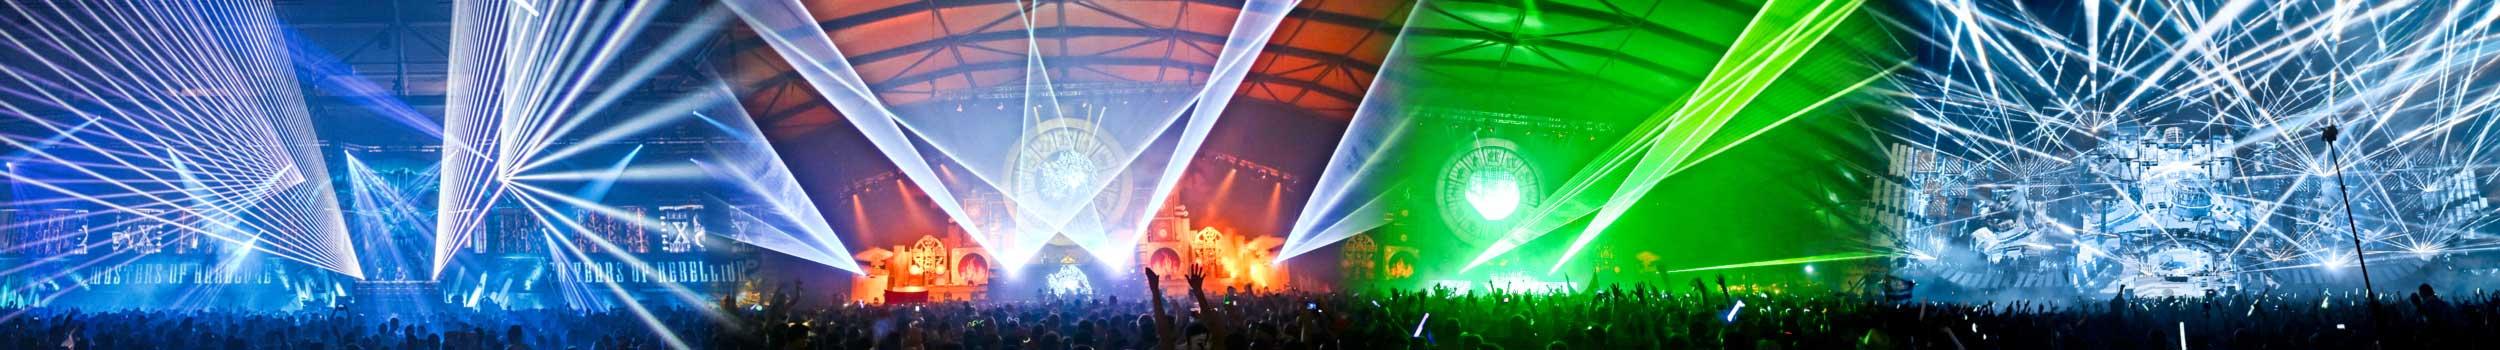 Laser show production